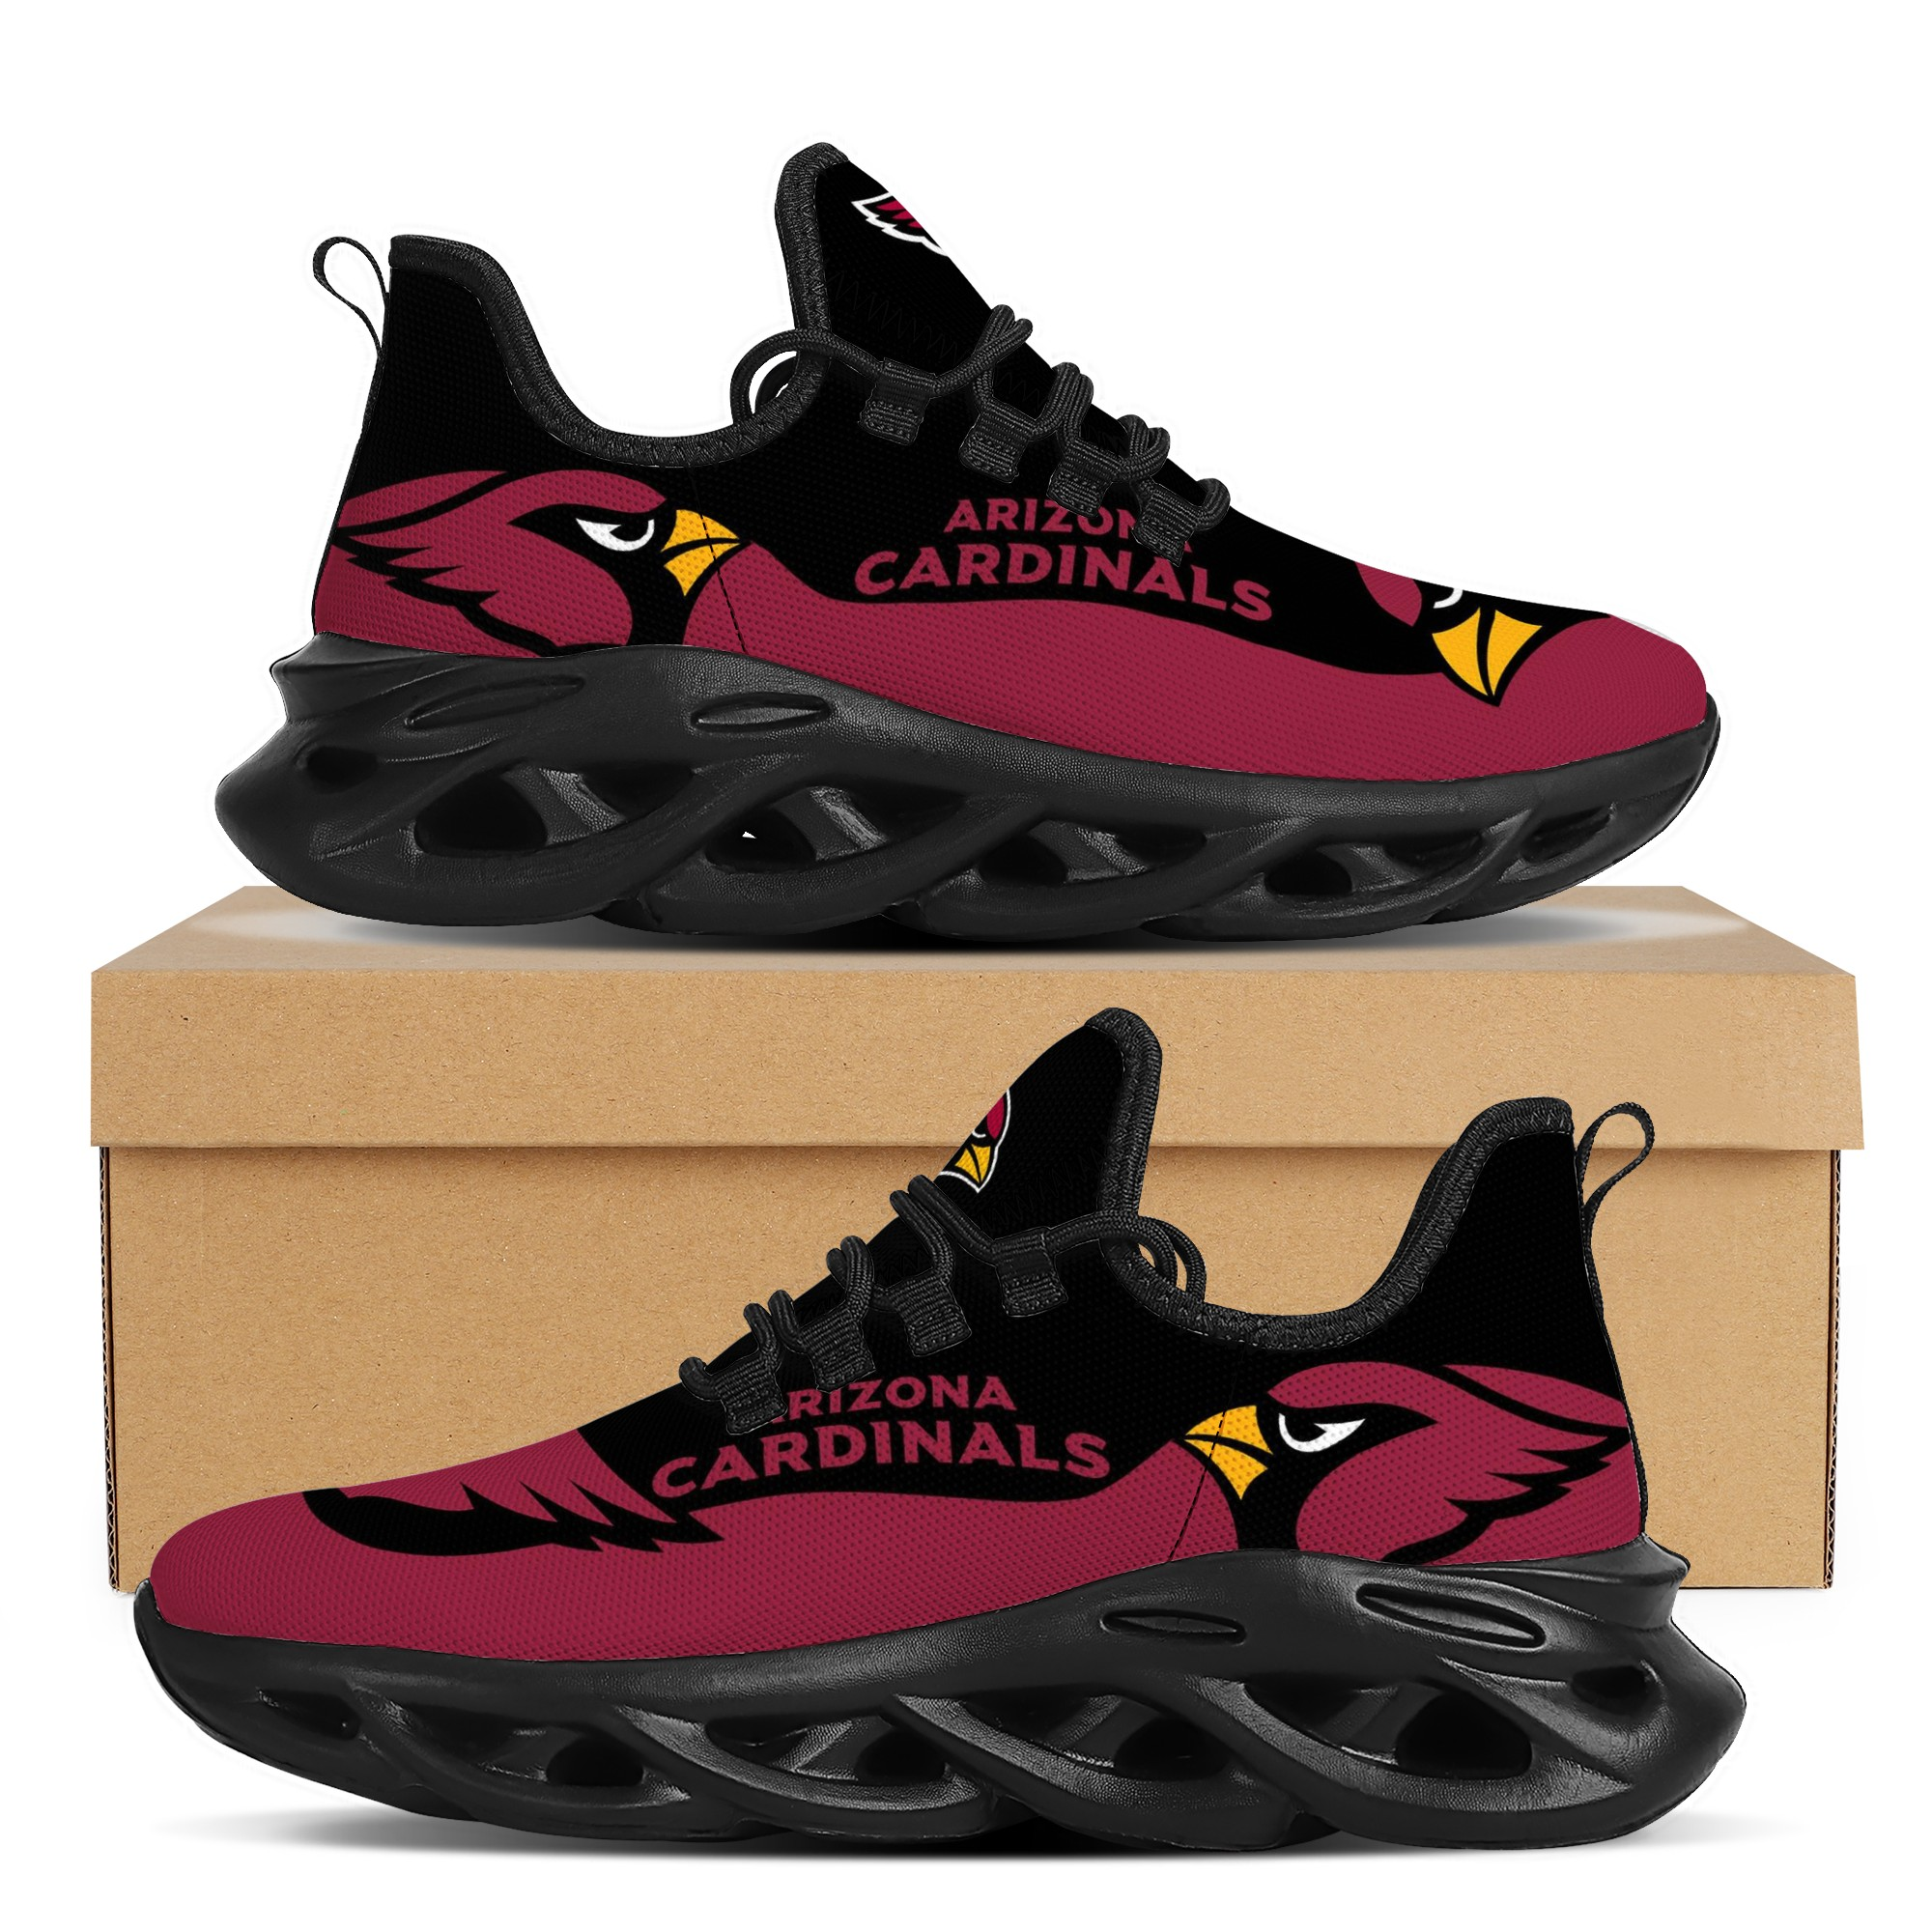 Women's Arizona Cardinals Flex Control Sneakers 001